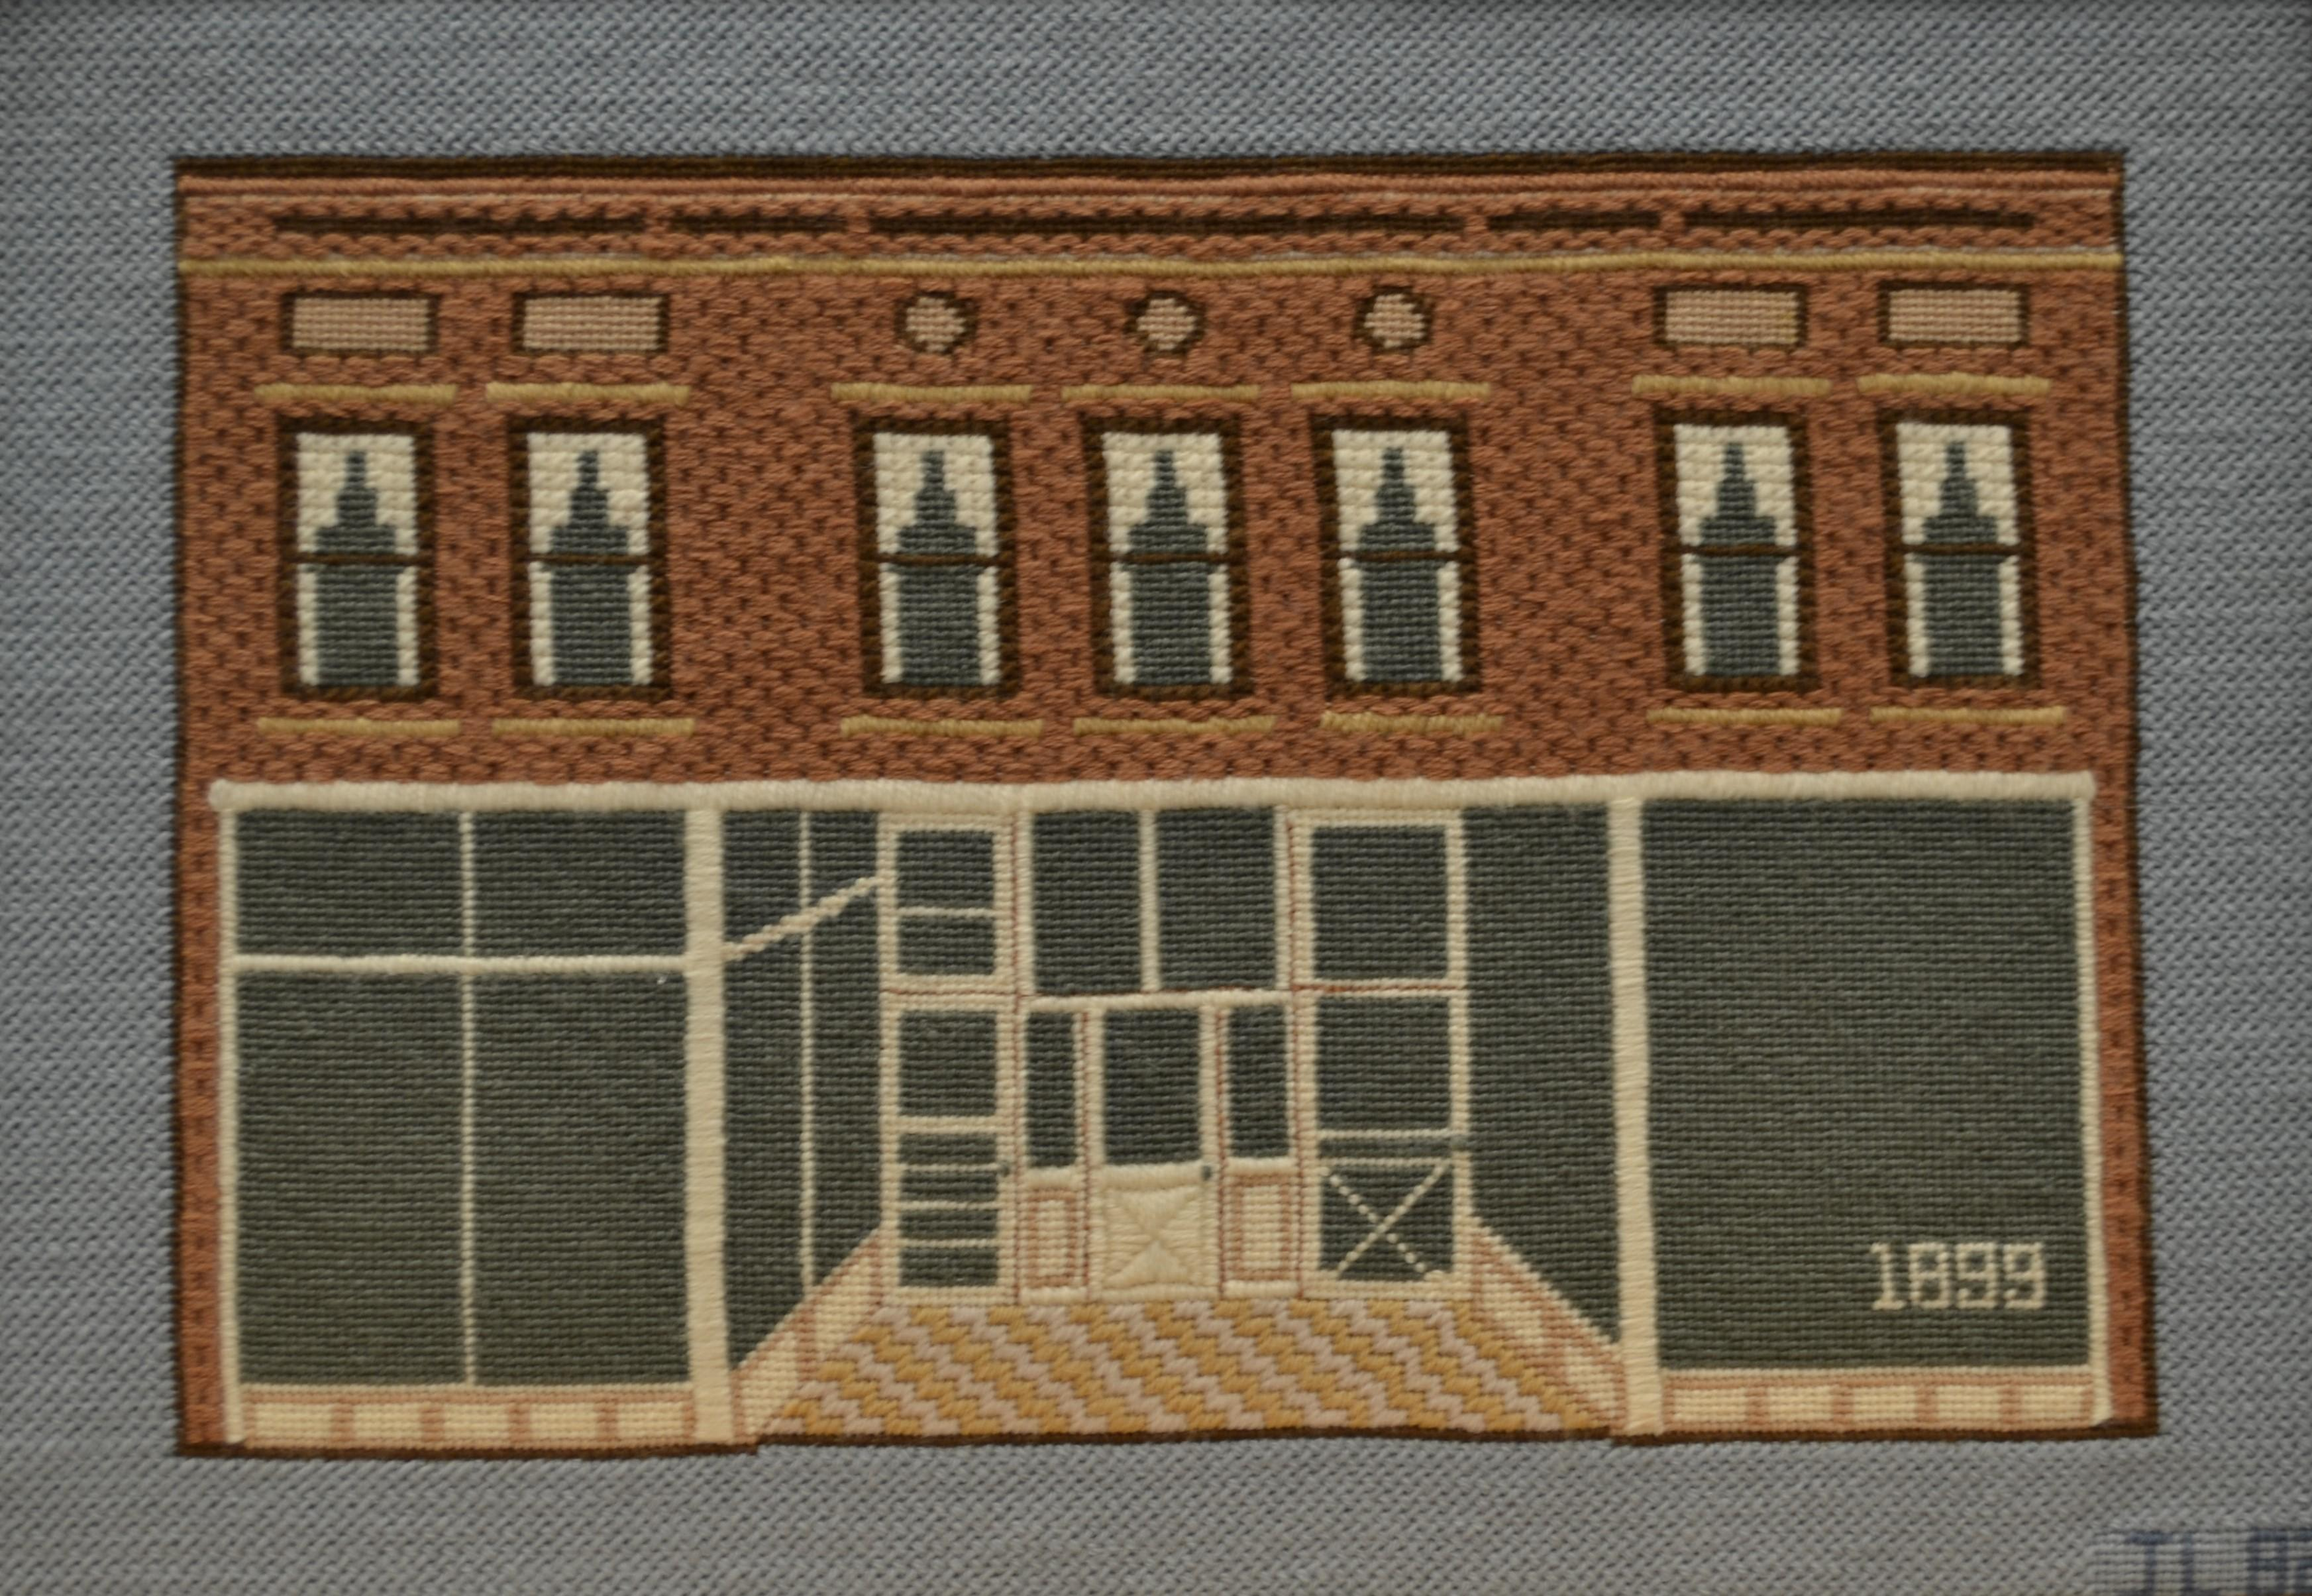 Needlepoint of the Cannon and Pratt building